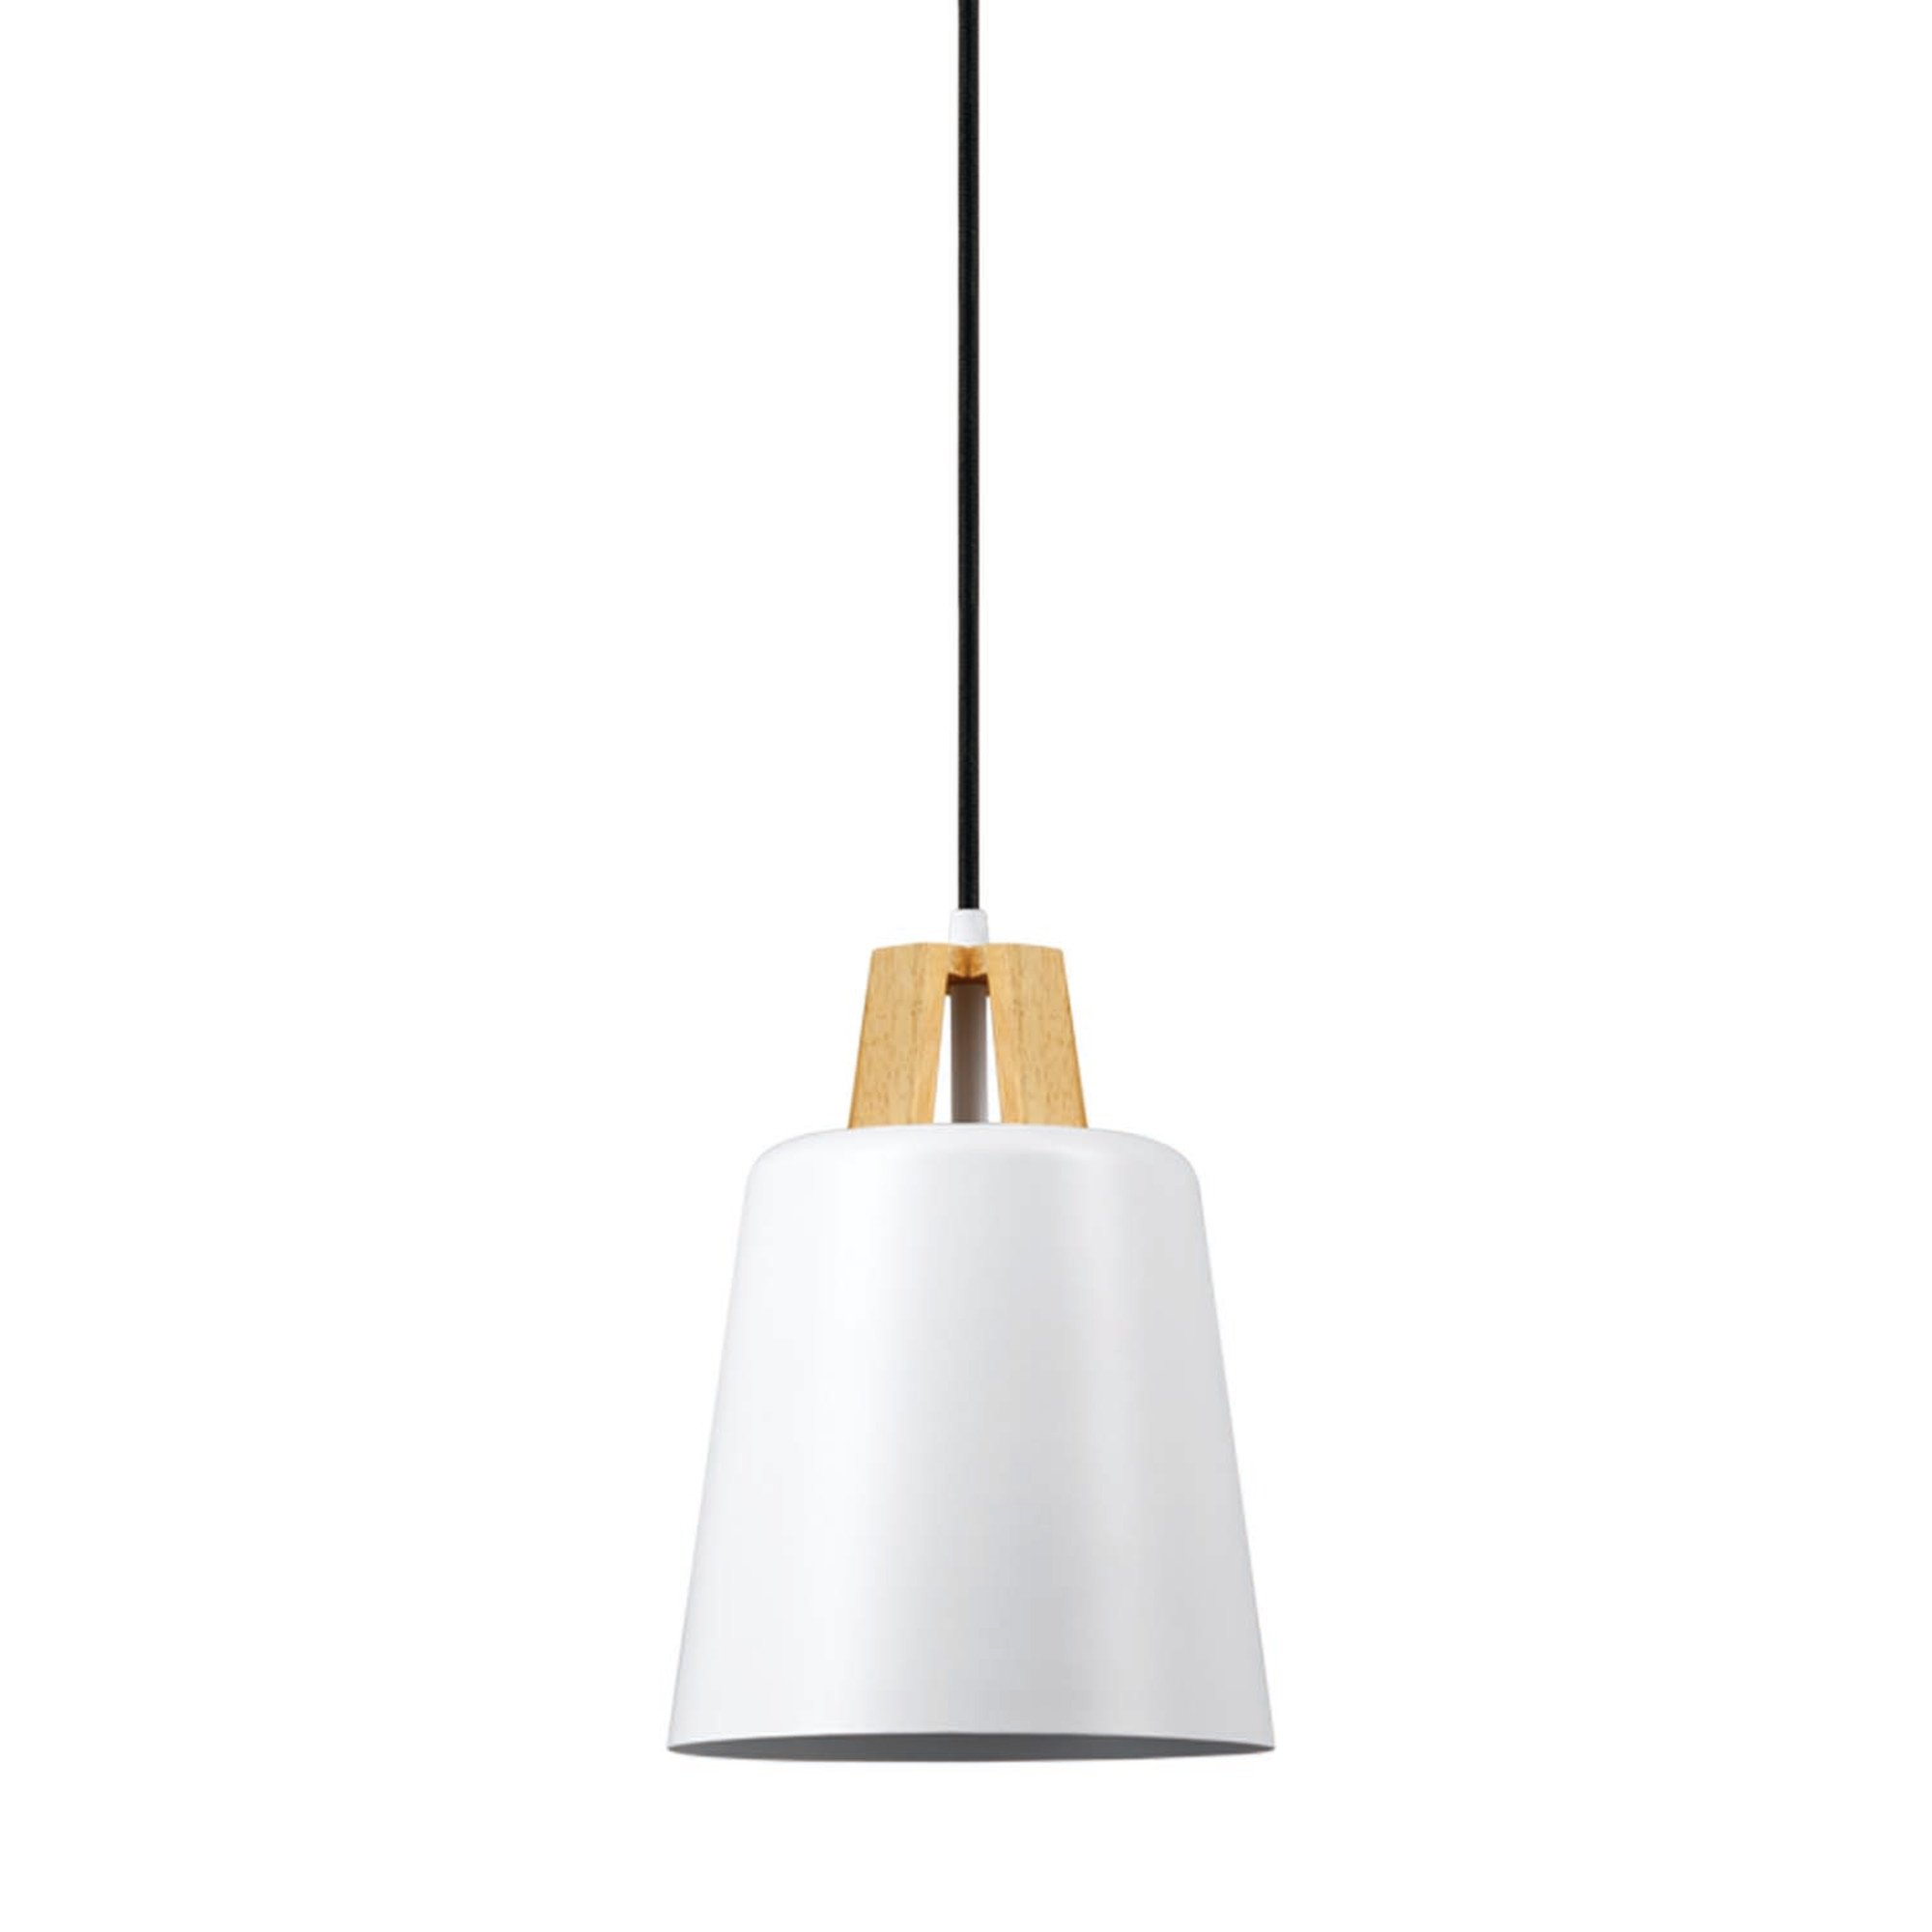 Globe Electric Jeor 1-Light Pendant, White Finish, Faux Wood Accent, 65431 by Globe Electric (Image #3)